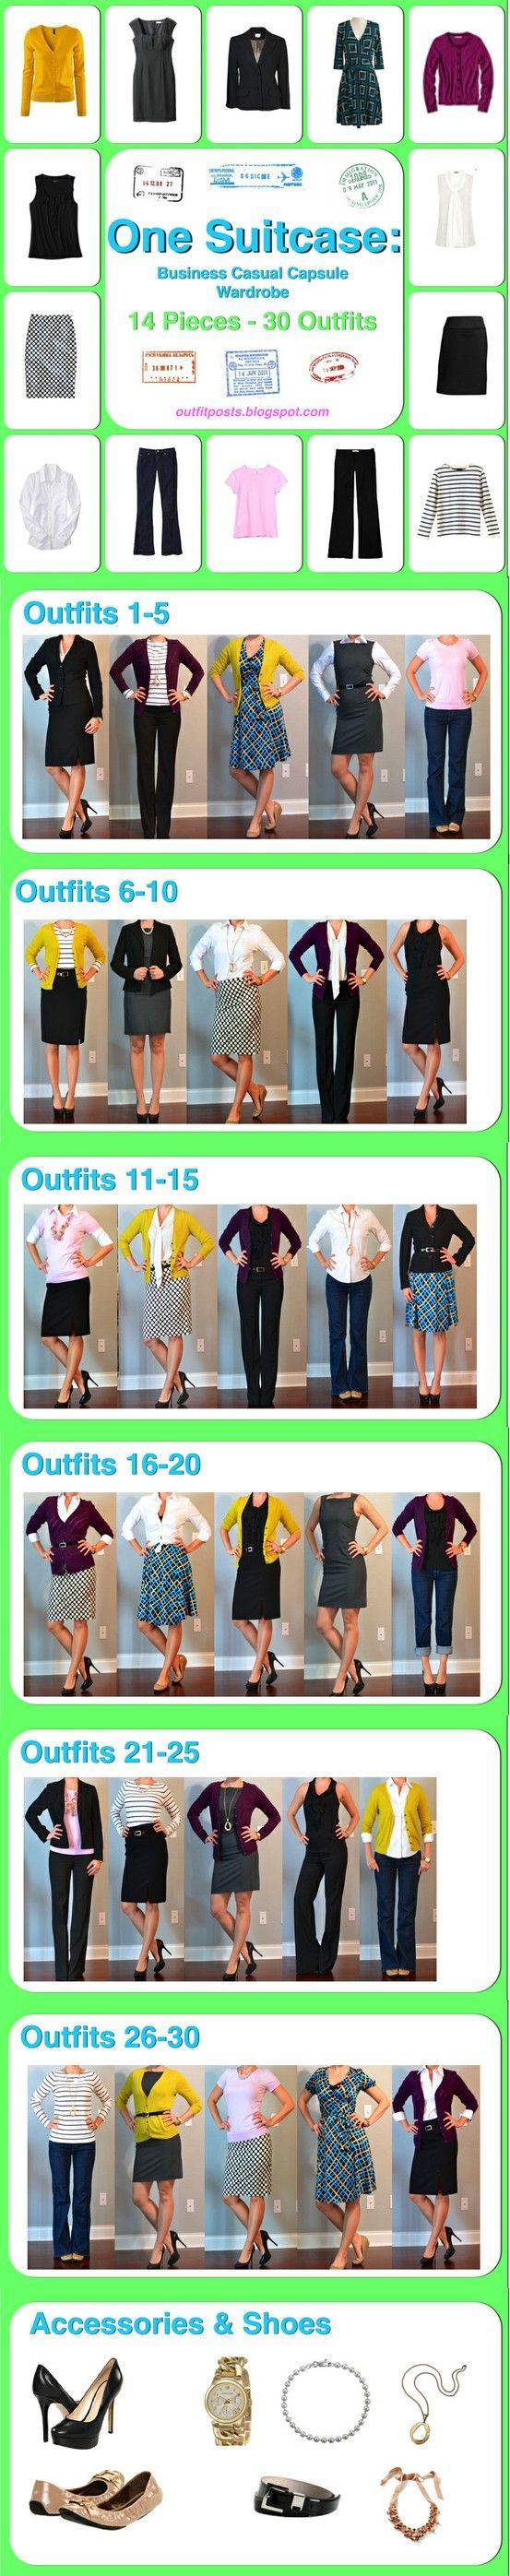 Outfit Posts: one suitcase: business casual capsule wardrobe (summary)